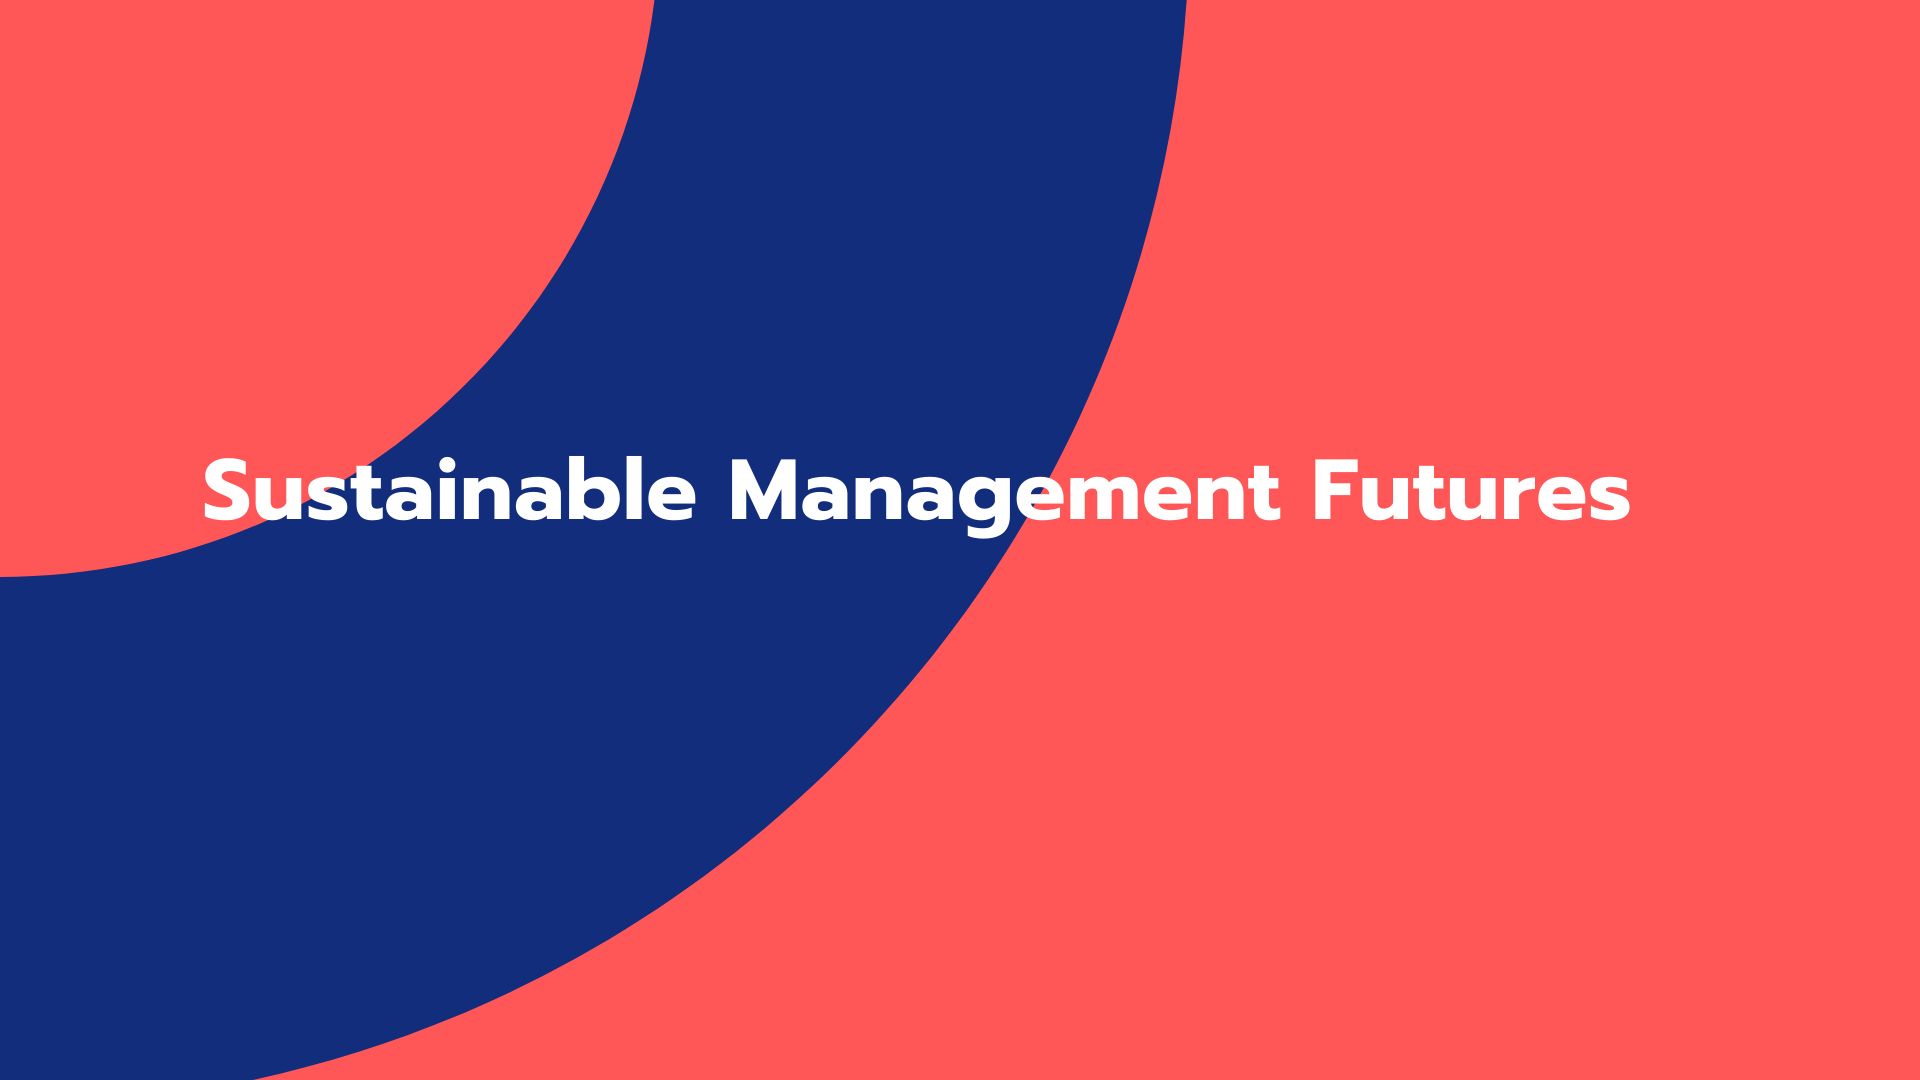 Sustainable Management Futures